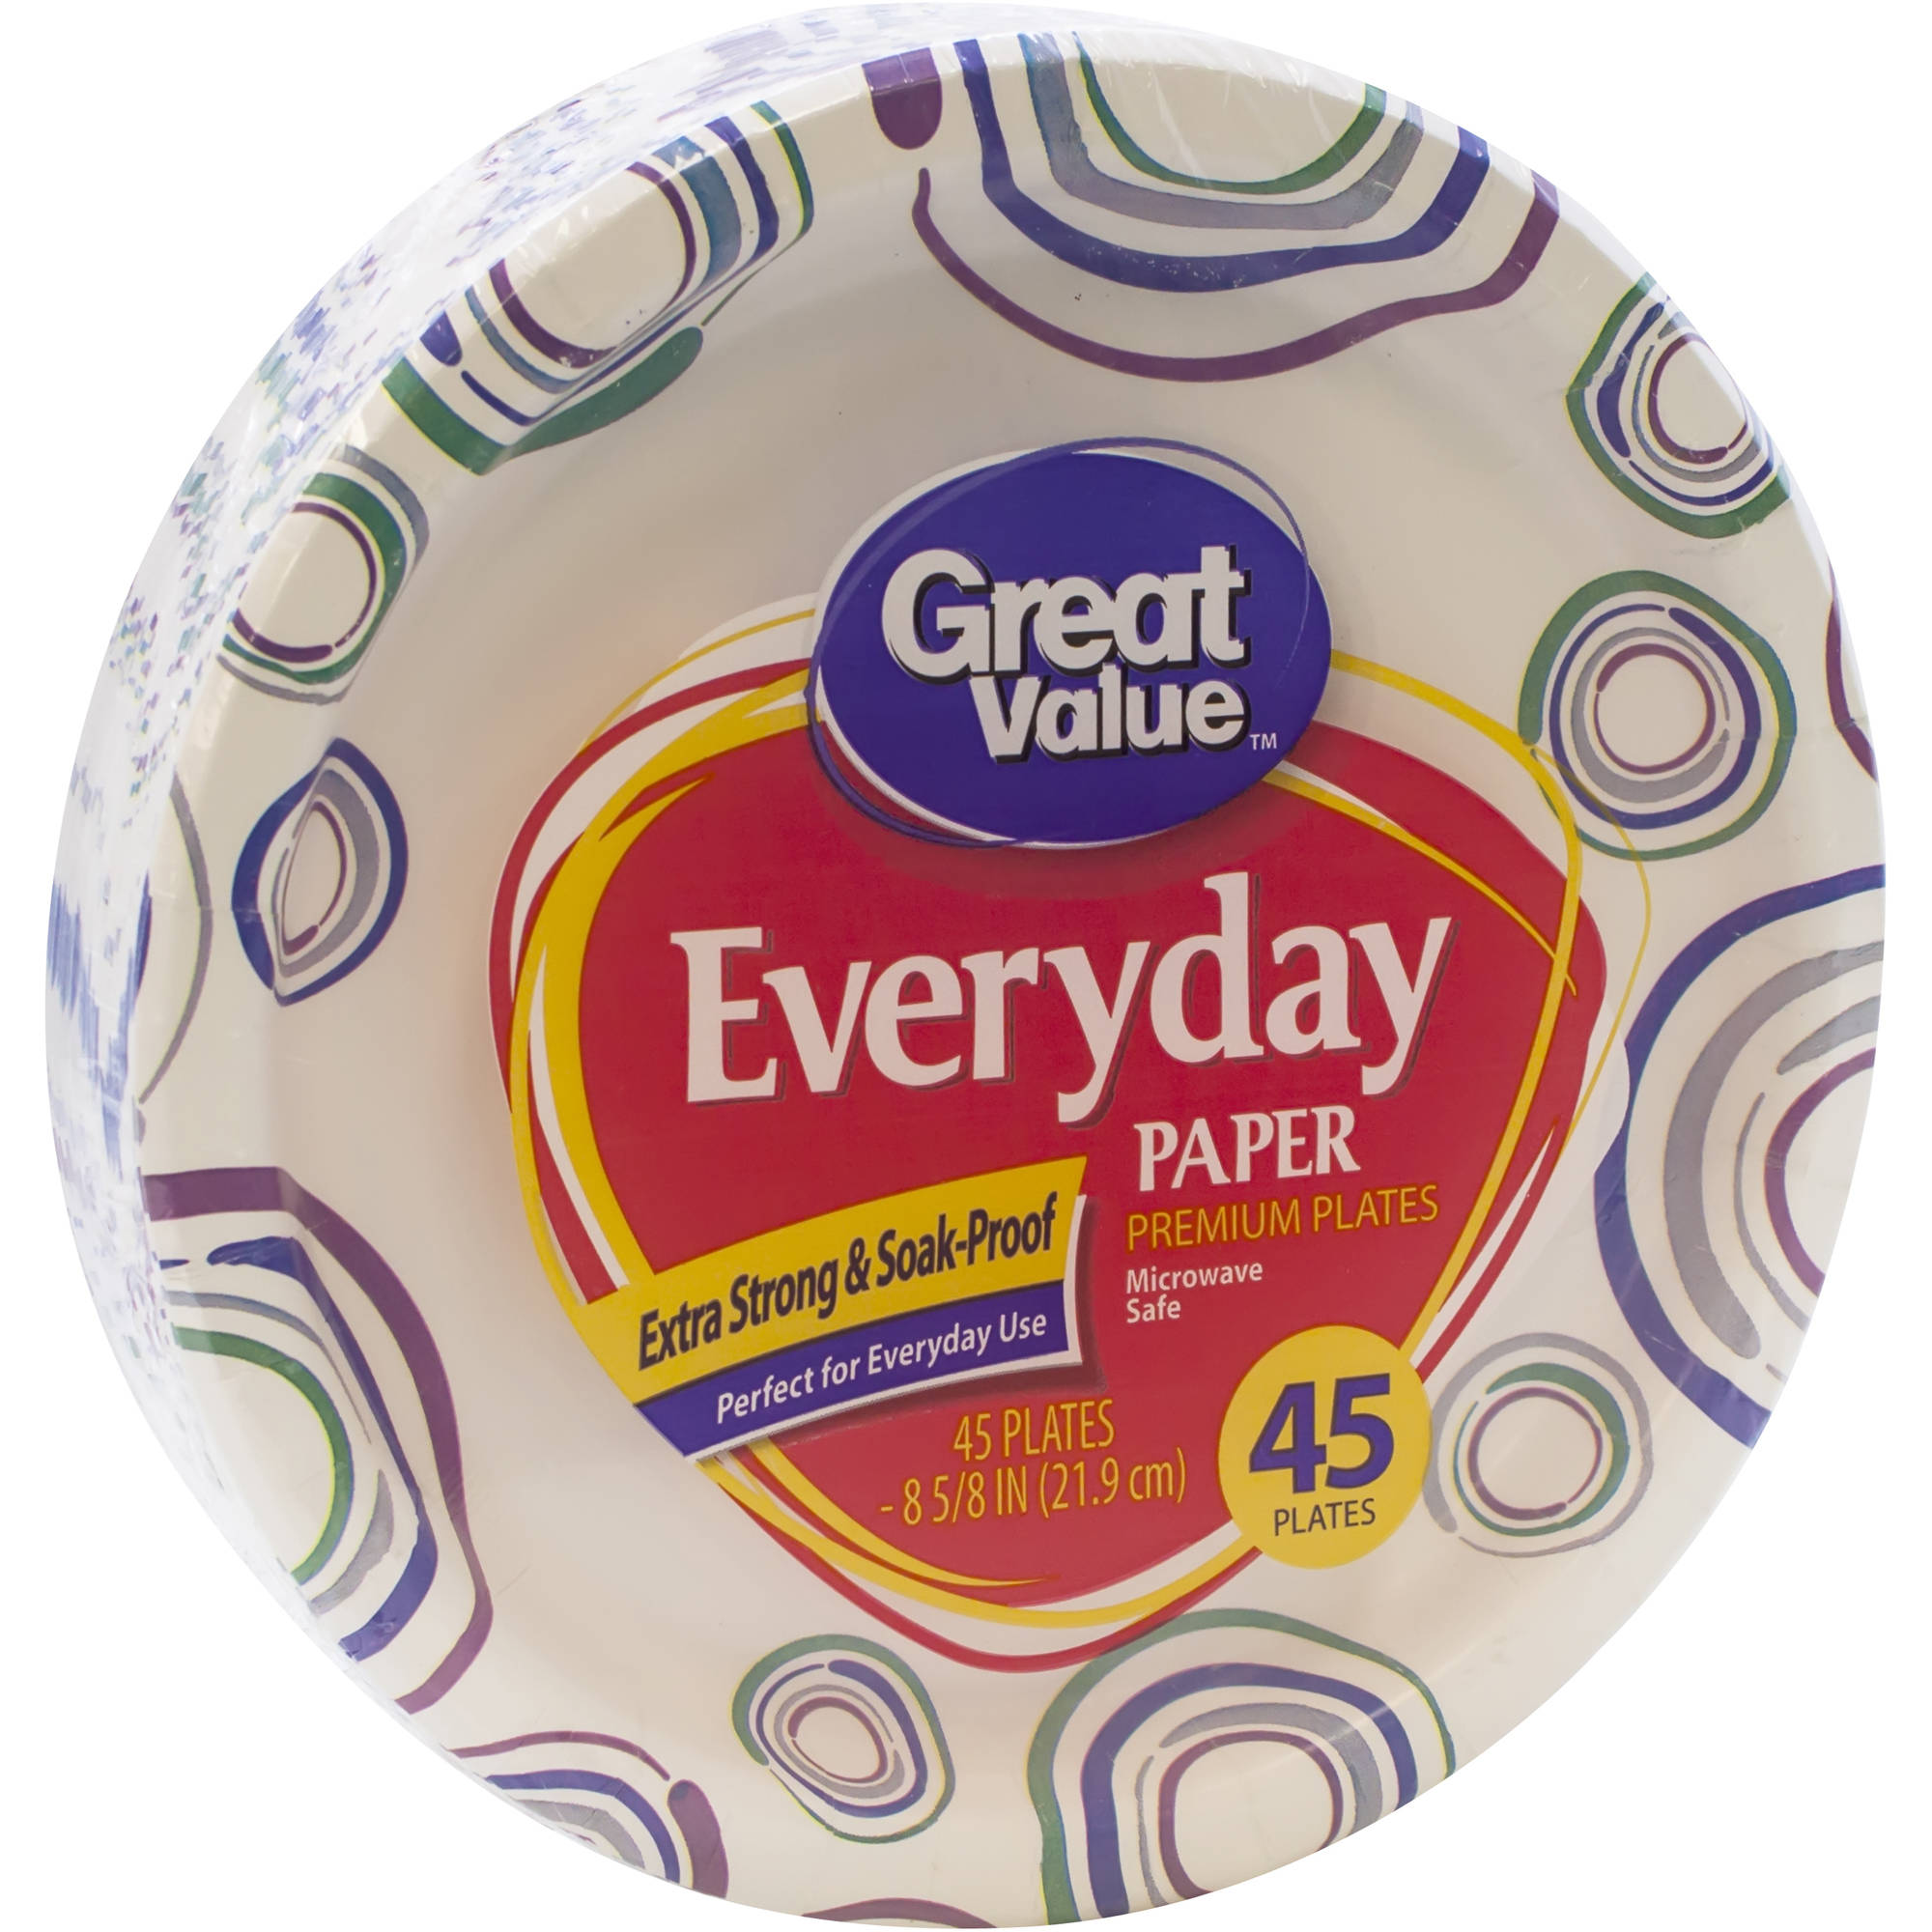 Great Value: Heavy Duty Paper Plates, 45 Ct